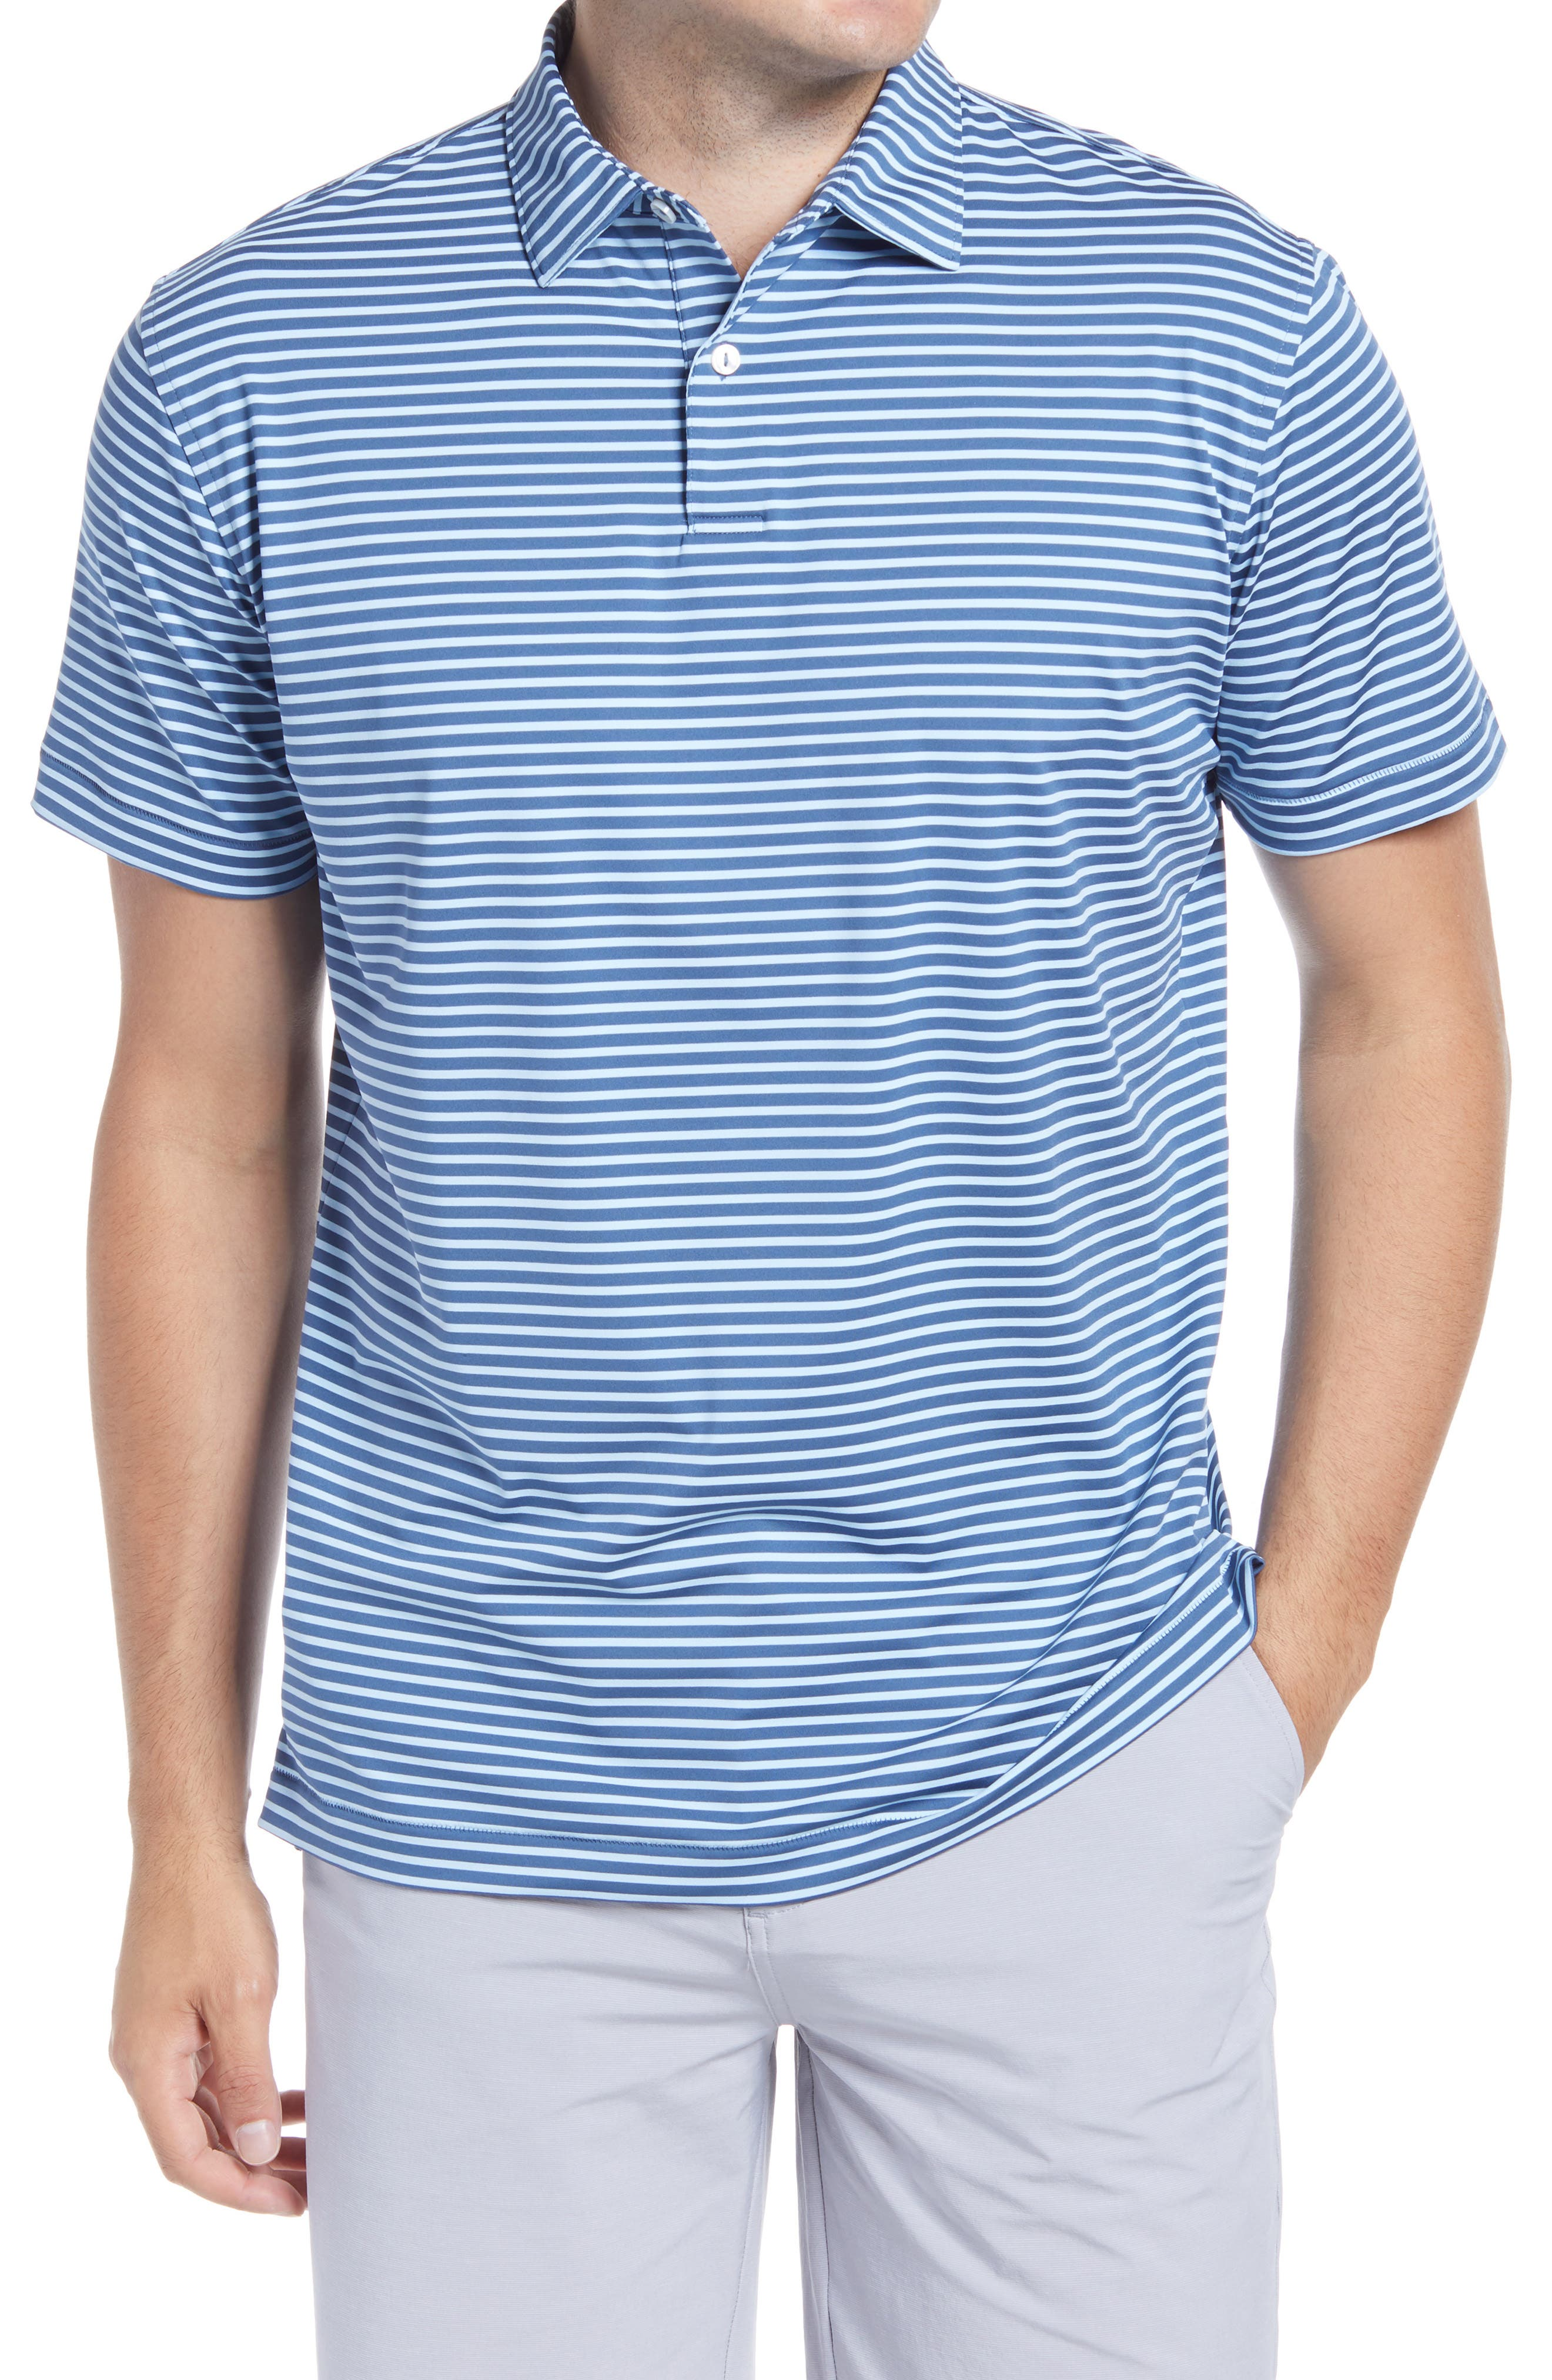 Hit the course and the clubhouse in style with this stretch-jersey polo patterned with narrow stripes. Style Name: Peter Millar Miles Stripe Short Sleeve Stretch Jersey Polo. Style Number: 6001265. Available in stores.